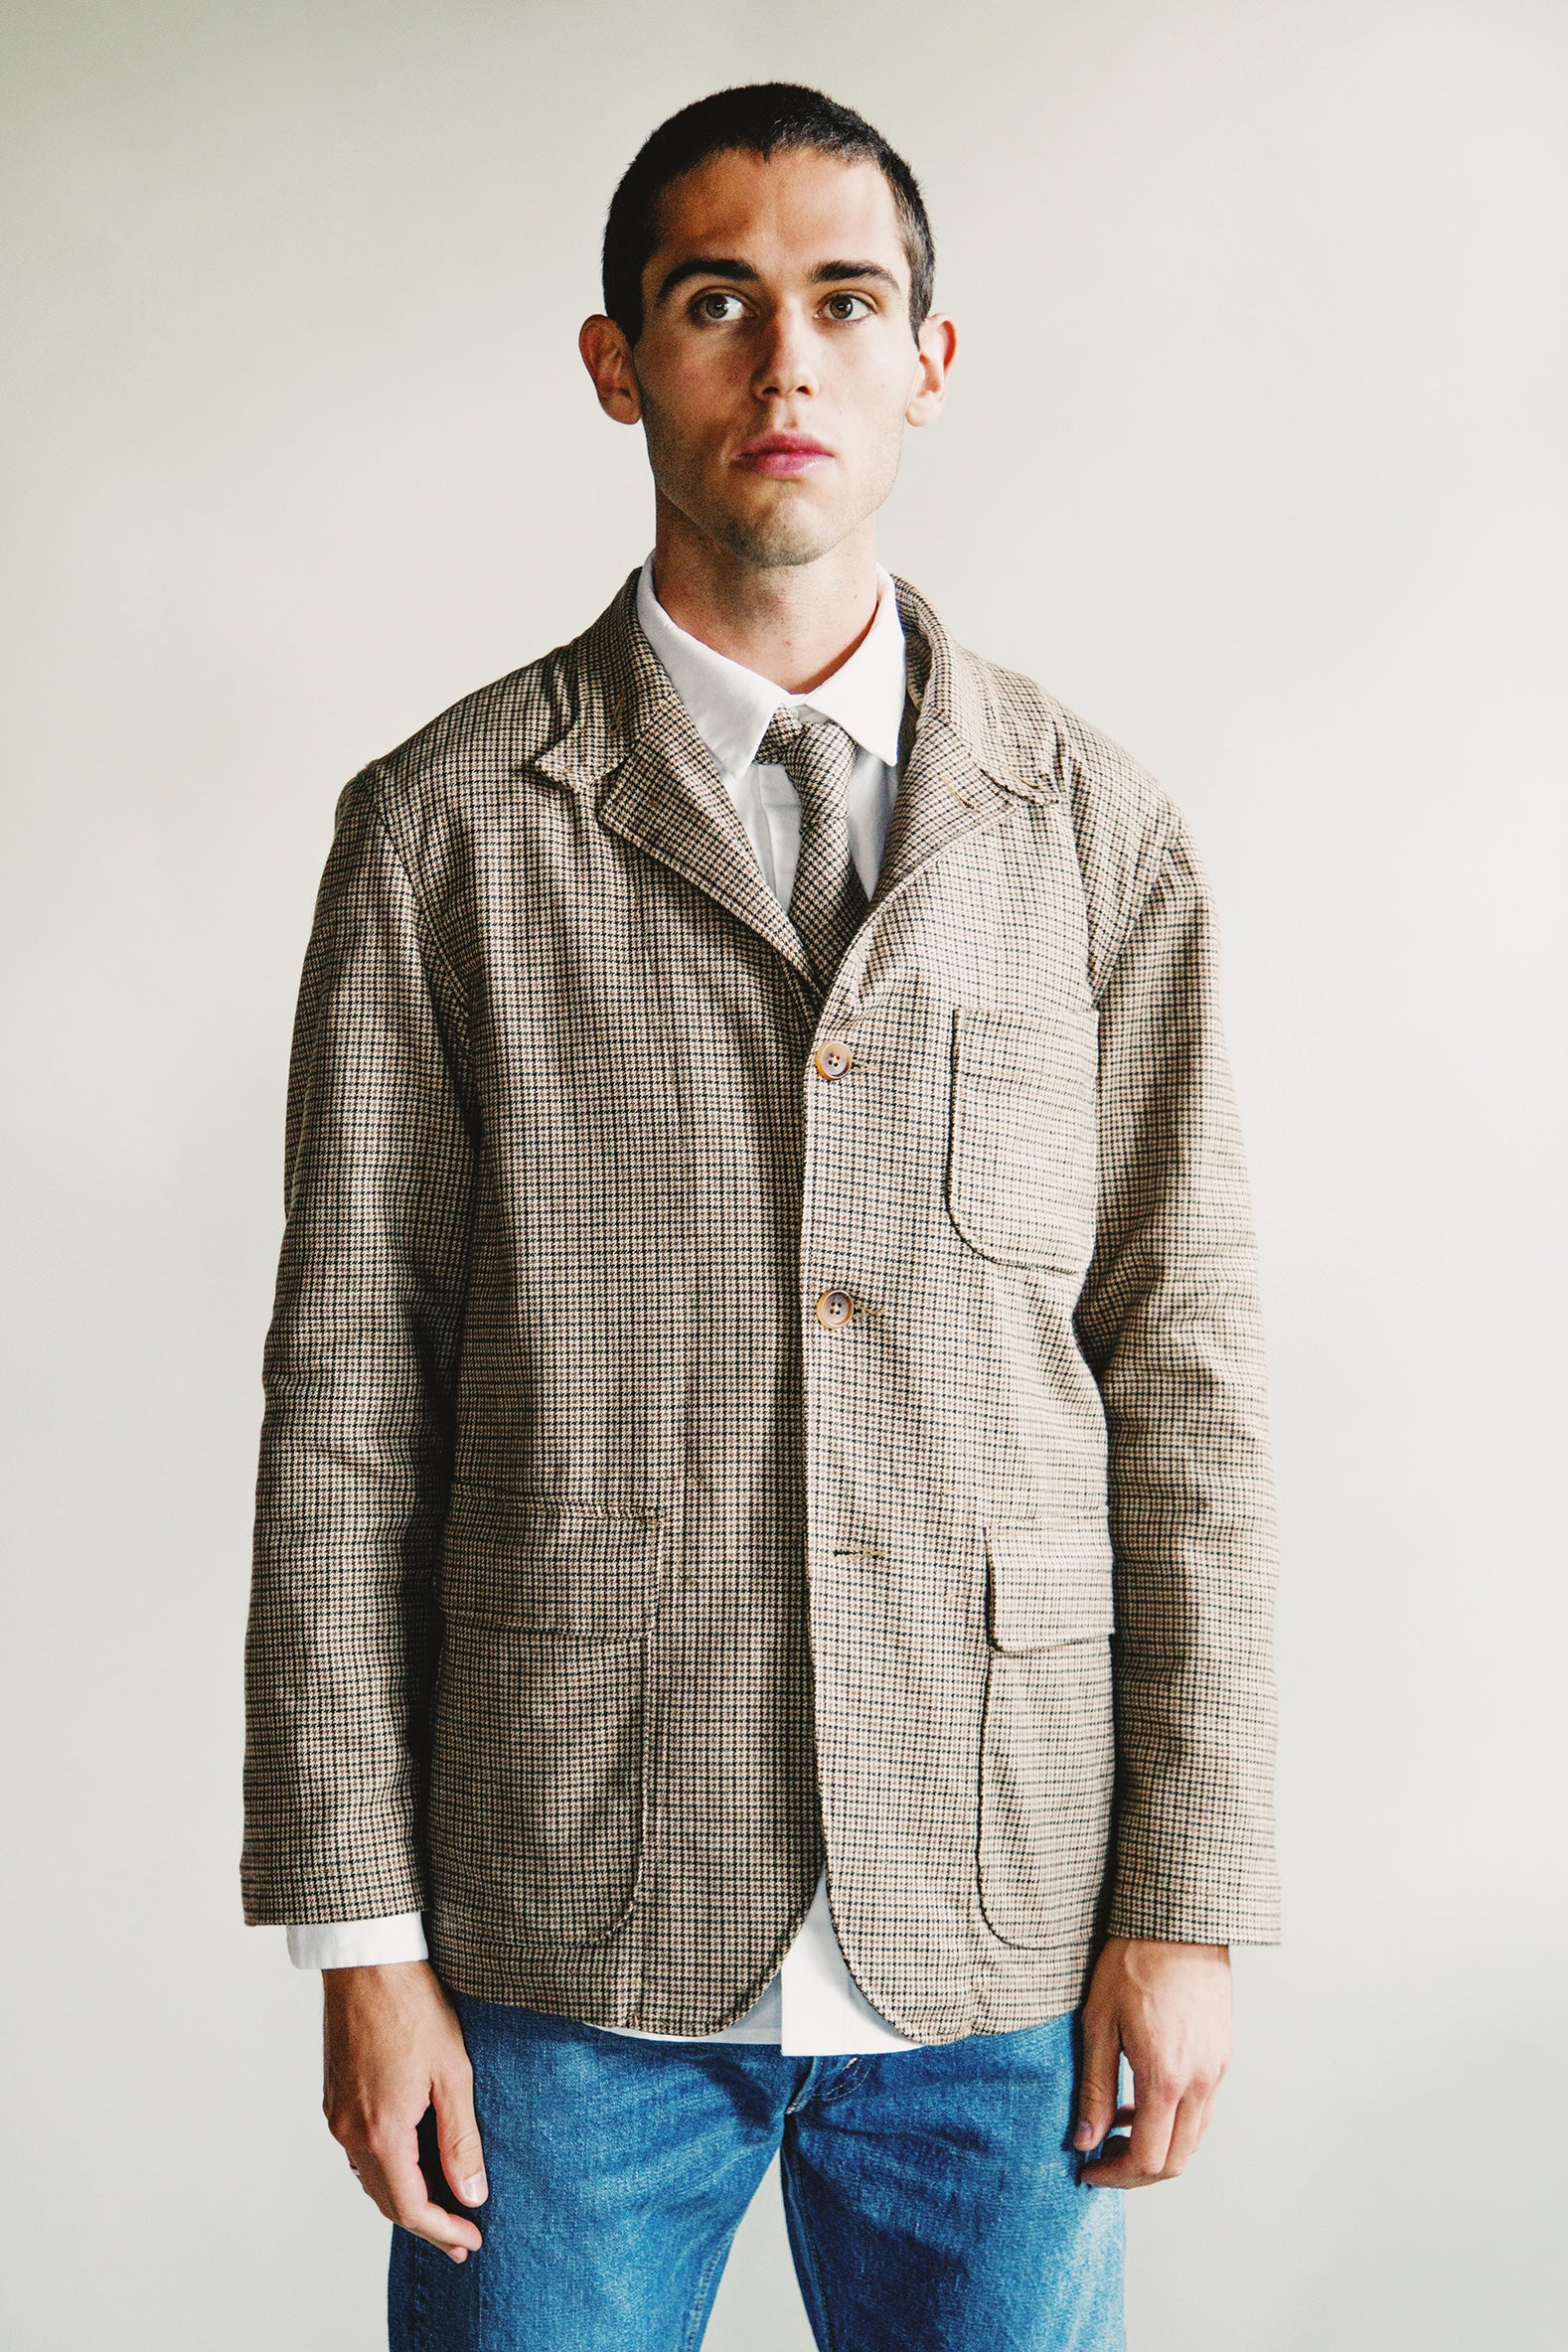 Engineered Garments - Loiter Jacket - Brown Wool Poly Gunclub Check - Canoe Club